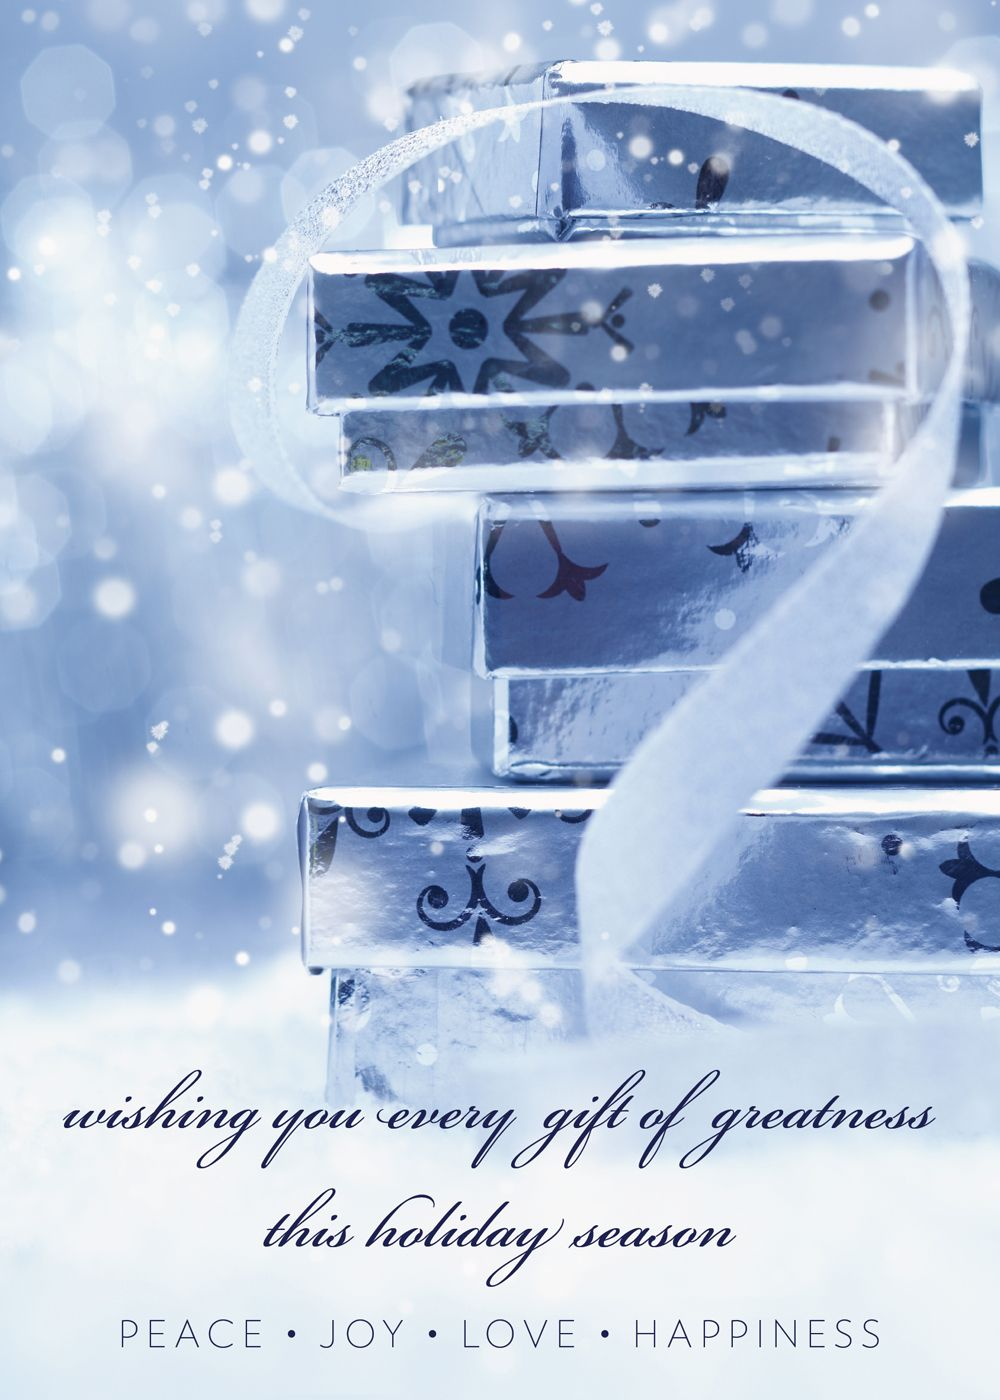 Gift Of Greatness Peace Joy Love Holiday Card Discount Greeting